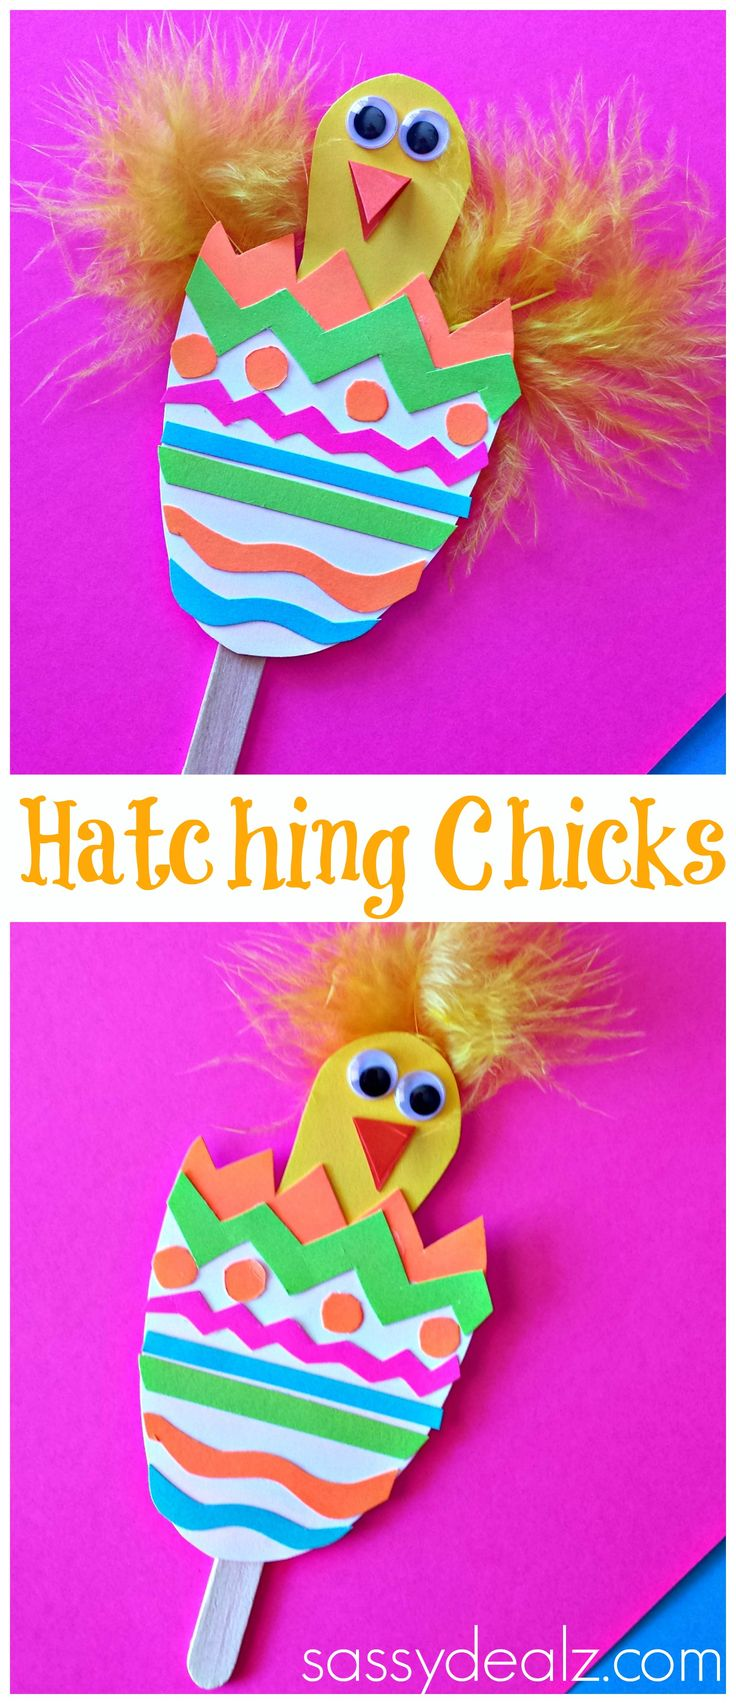 Easter Craft for Kids! Hatching Chicks in Easter eggs! #DIY | CraftyMorning.com